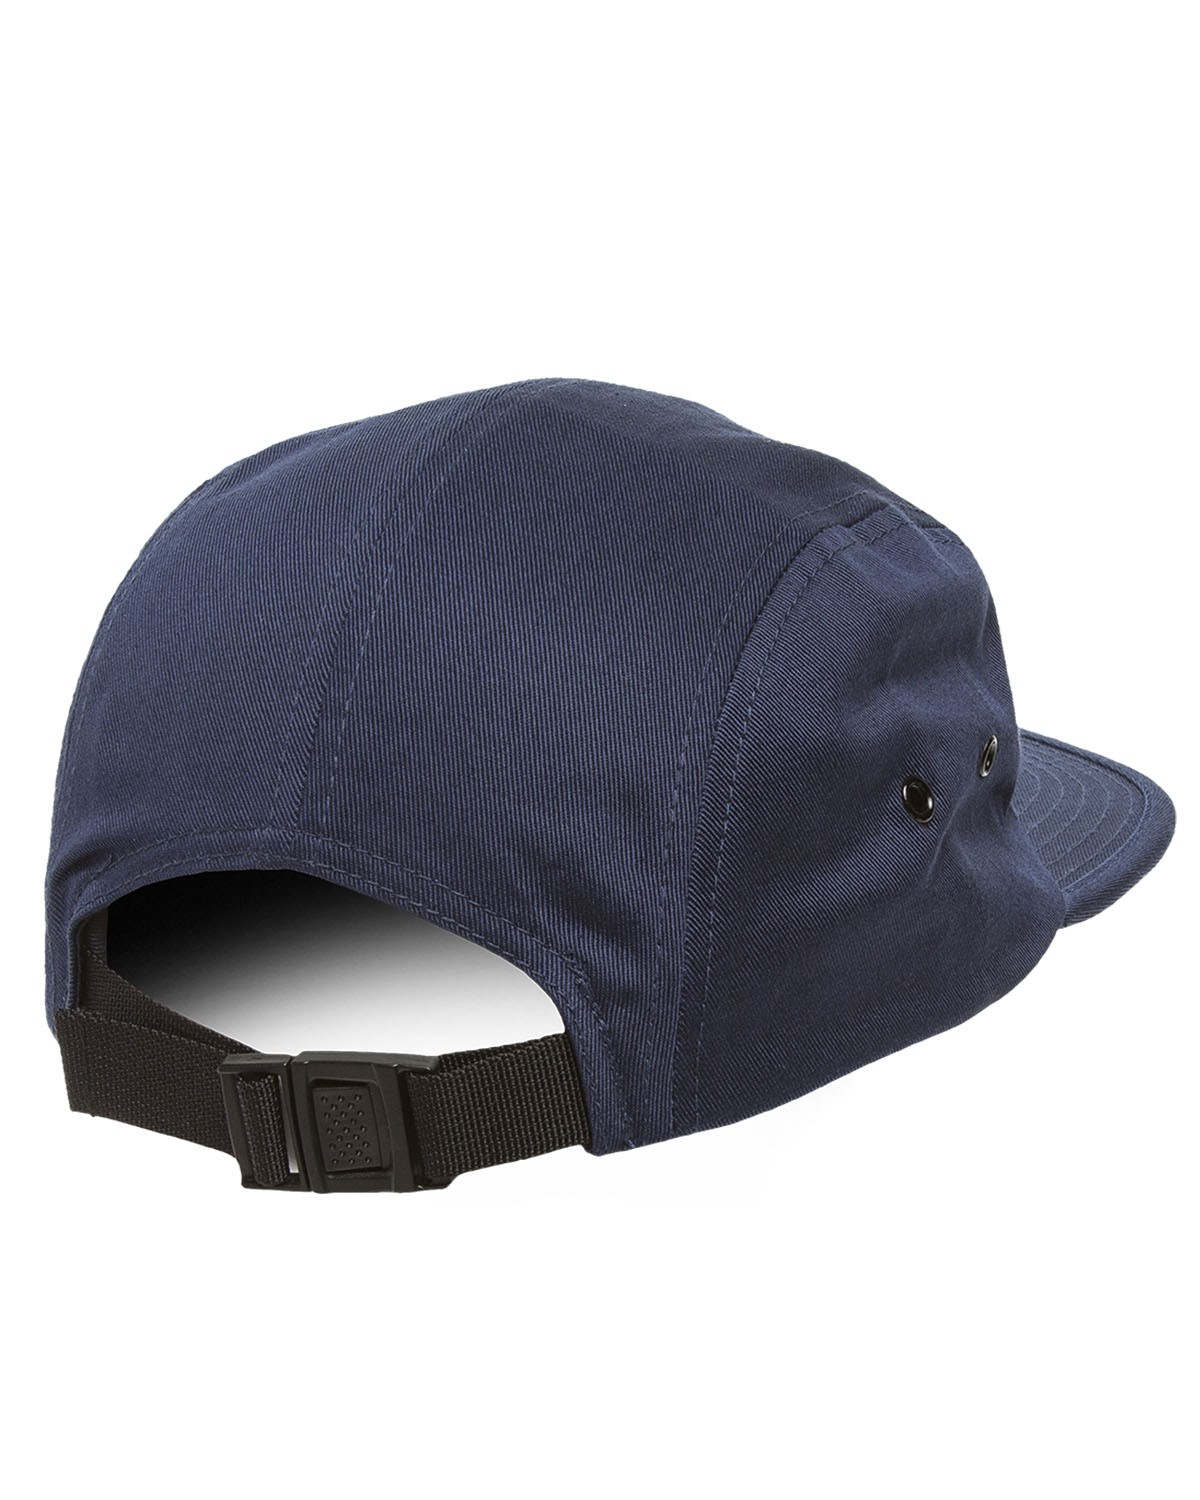 Y7005 Yupoong NAVY